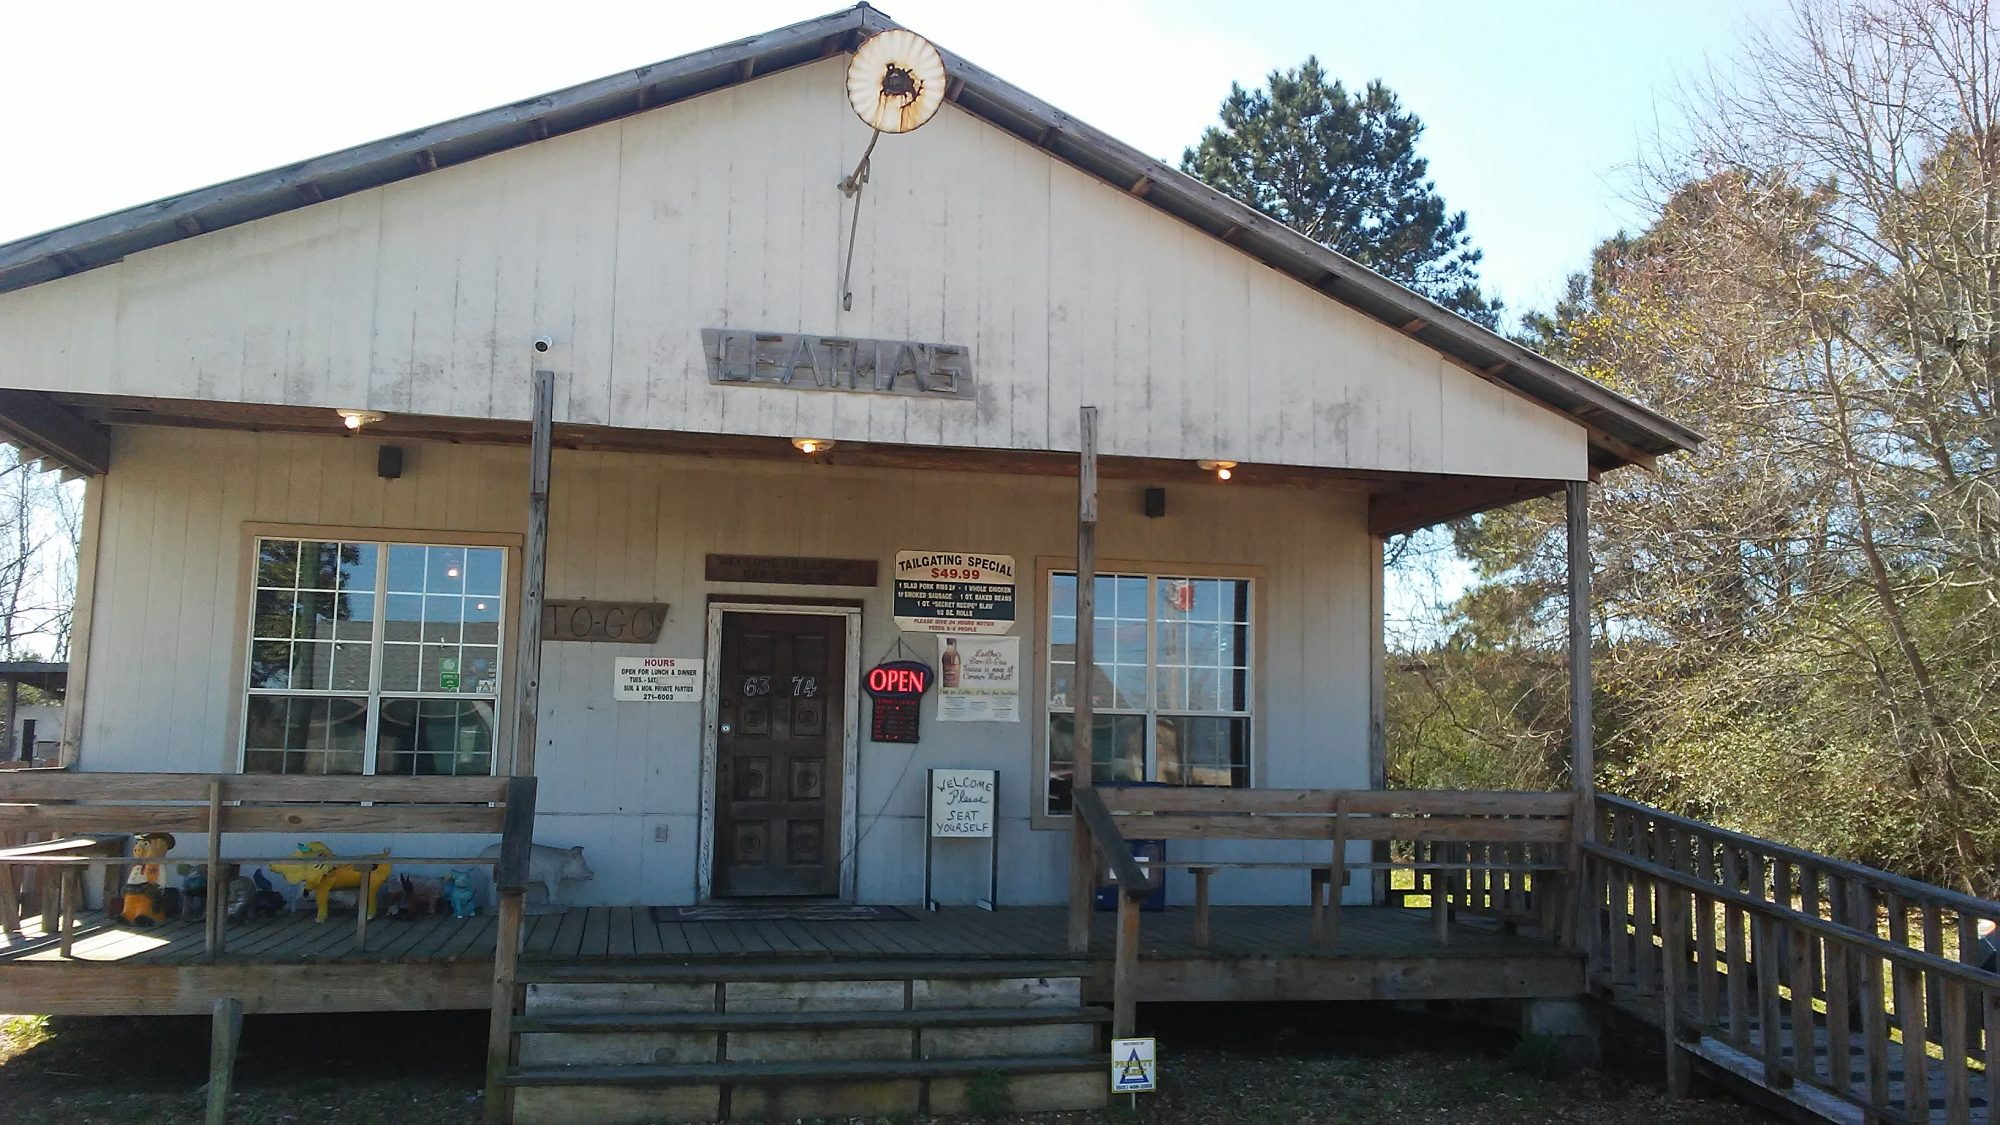 Mississippi: Leatha's Bar-B-Que Inn